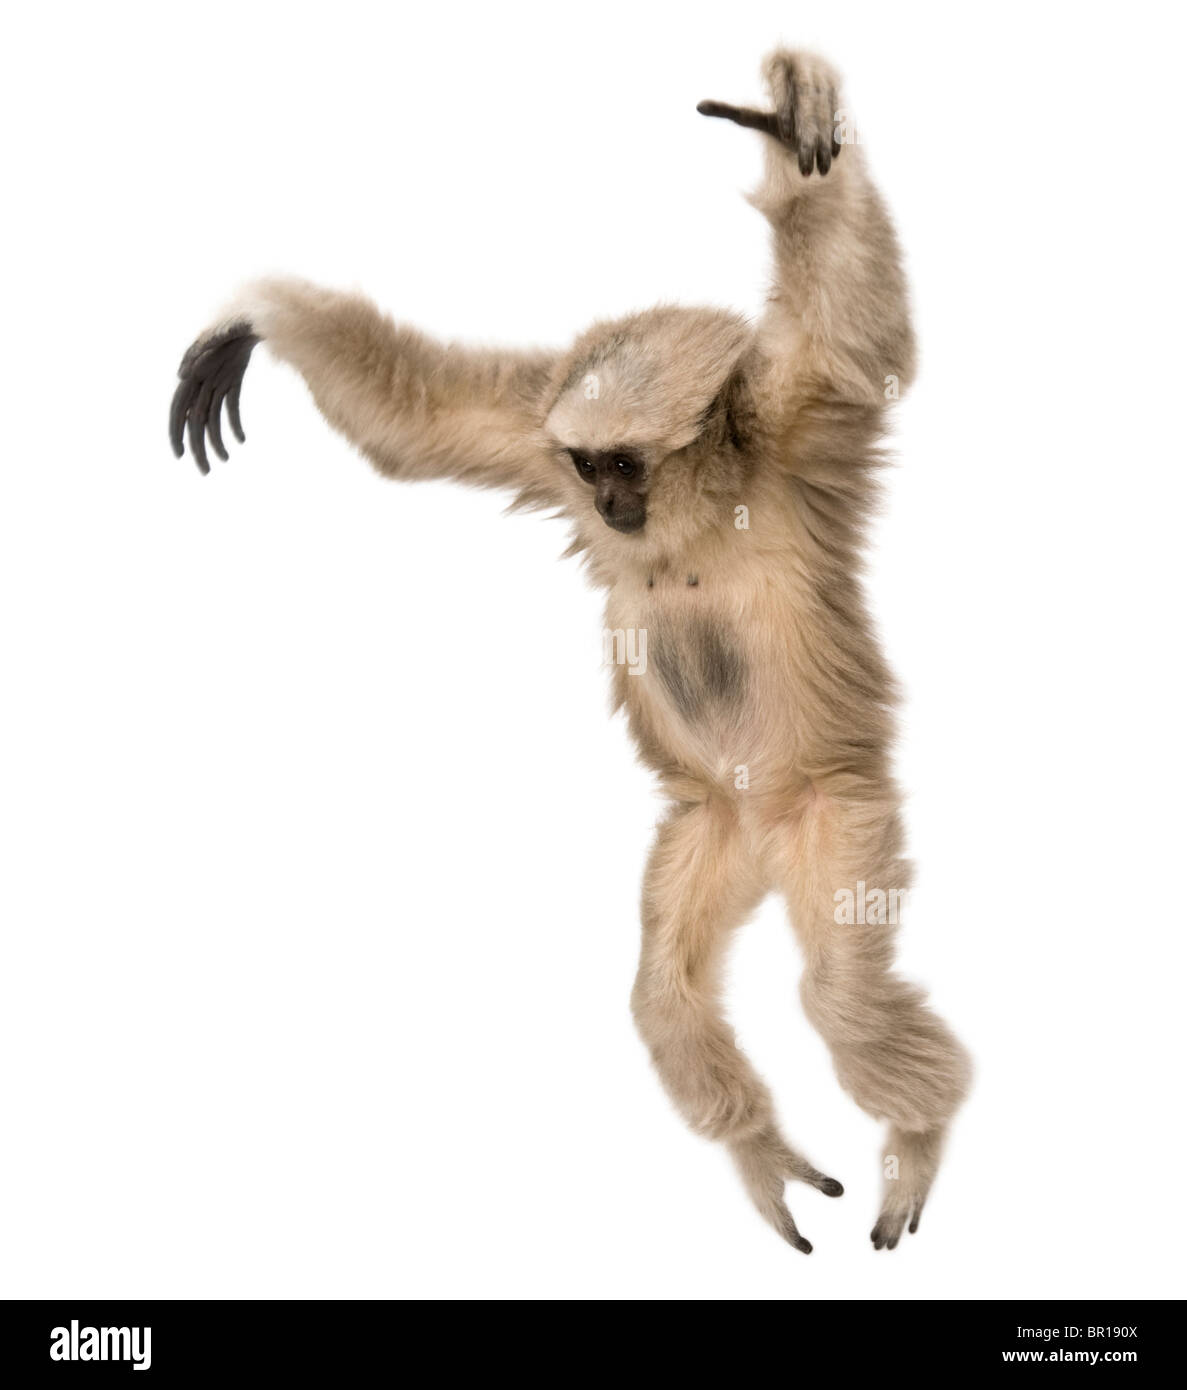 Young Pileated Gibbon, Hylobates Pileatus, 1 year old, leaping in front of white background - Stock Image